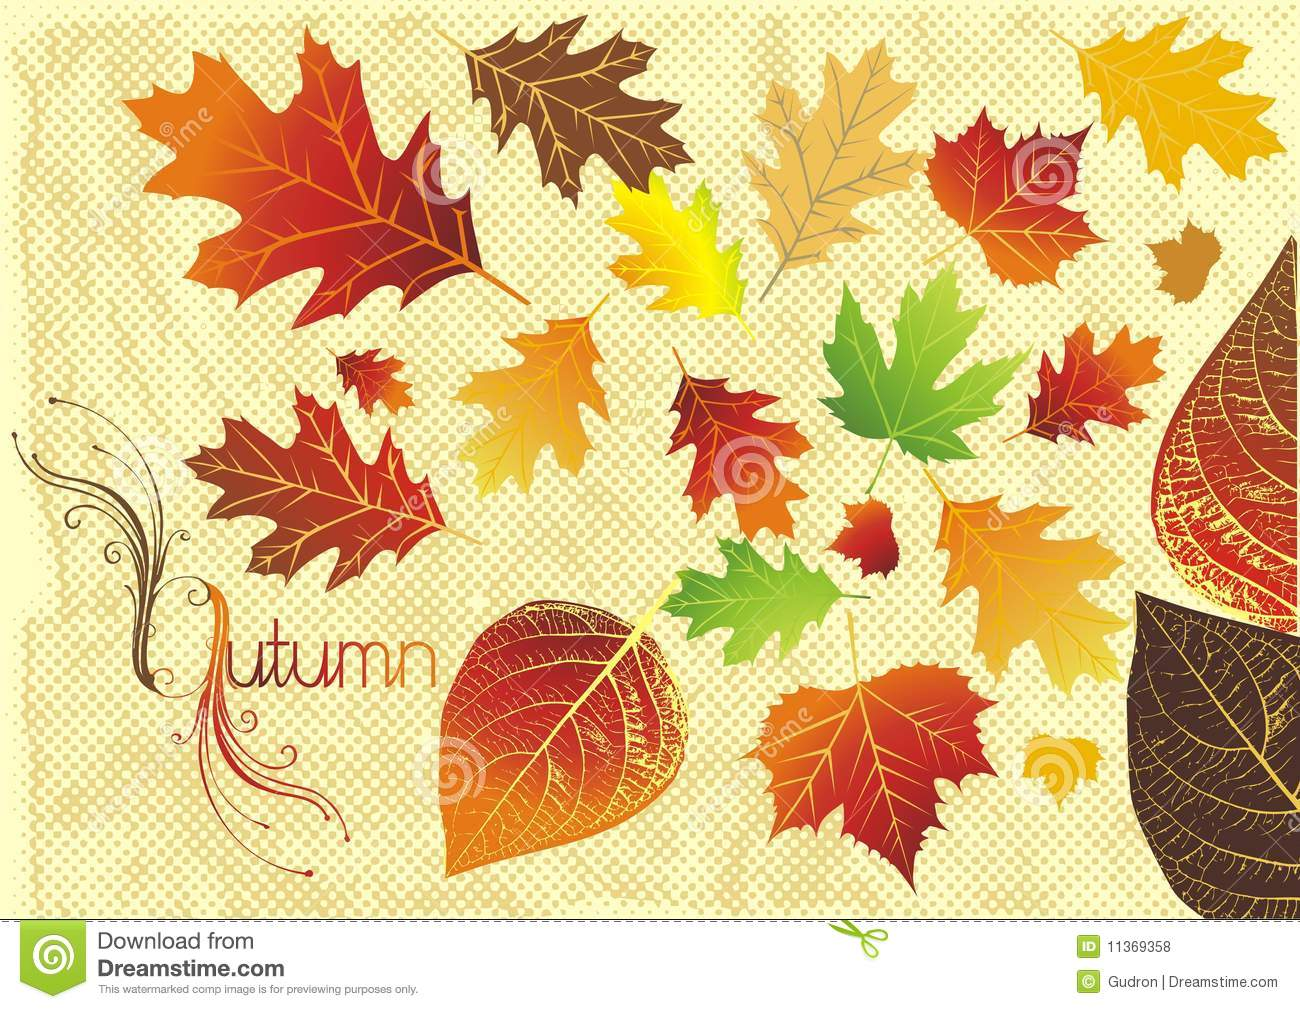 Falling Leaves Wallpaper Free Download Fall Leaves Illustration Royalty Free Stock Photos Image